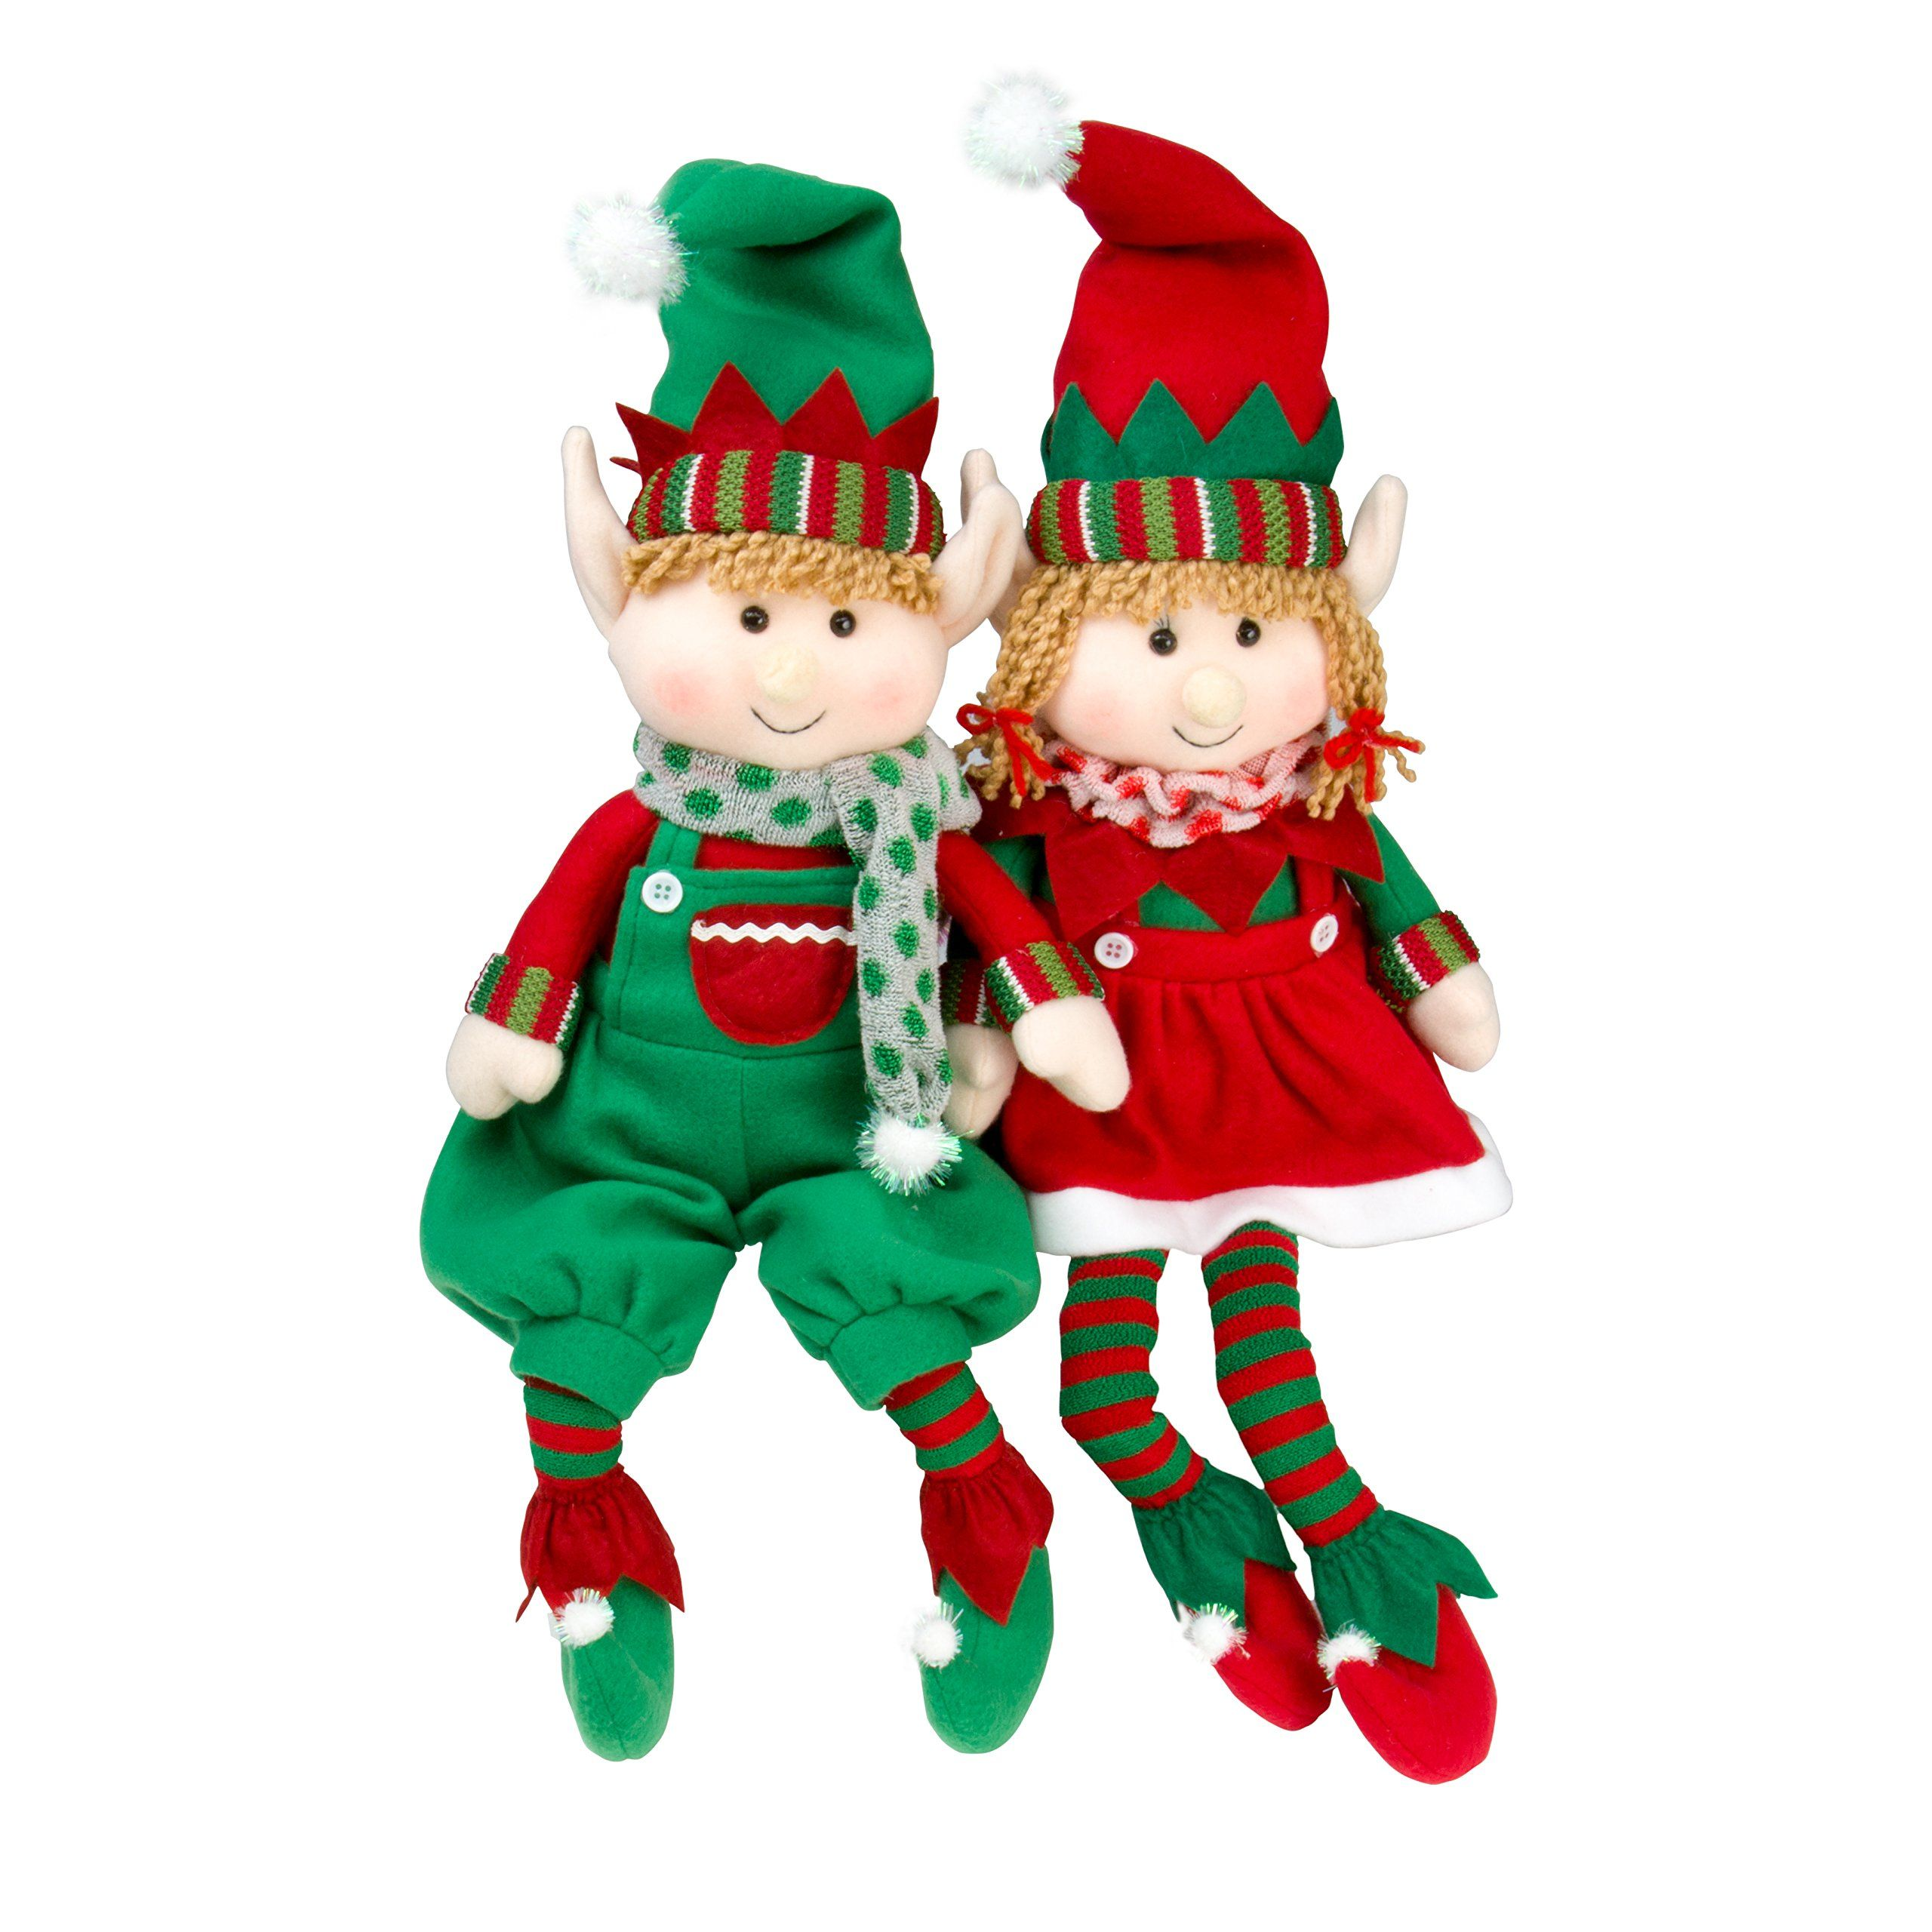 "Elf Plush Christmas Stuffed Toys 12"" Boy and Girl Elves Set of 2"